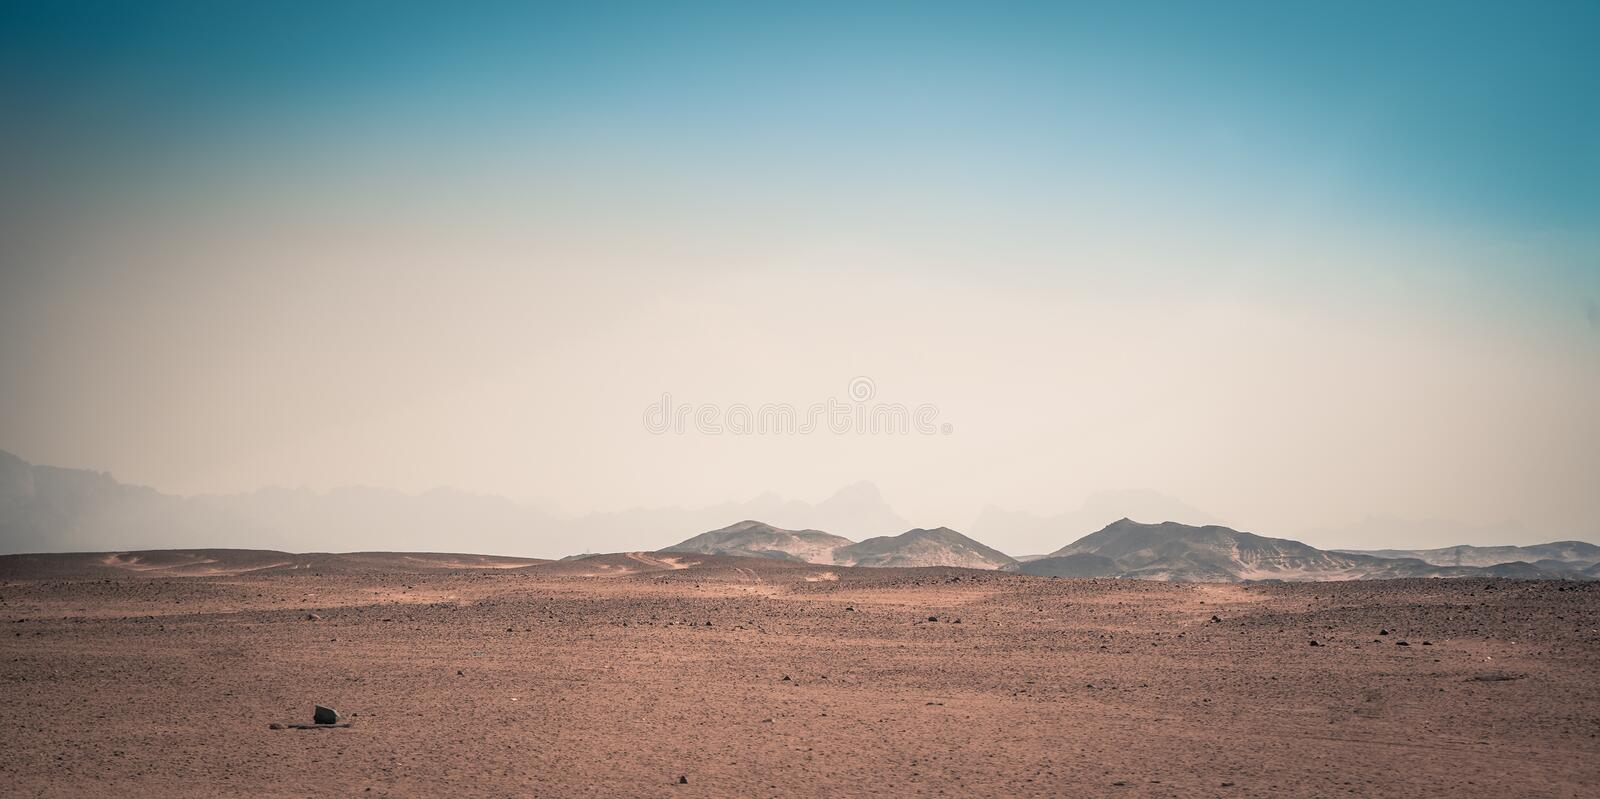 Landscape mountains in the desert of Africa, Egypt. The landscape mountains in the desert of Africa, Egypt stock images